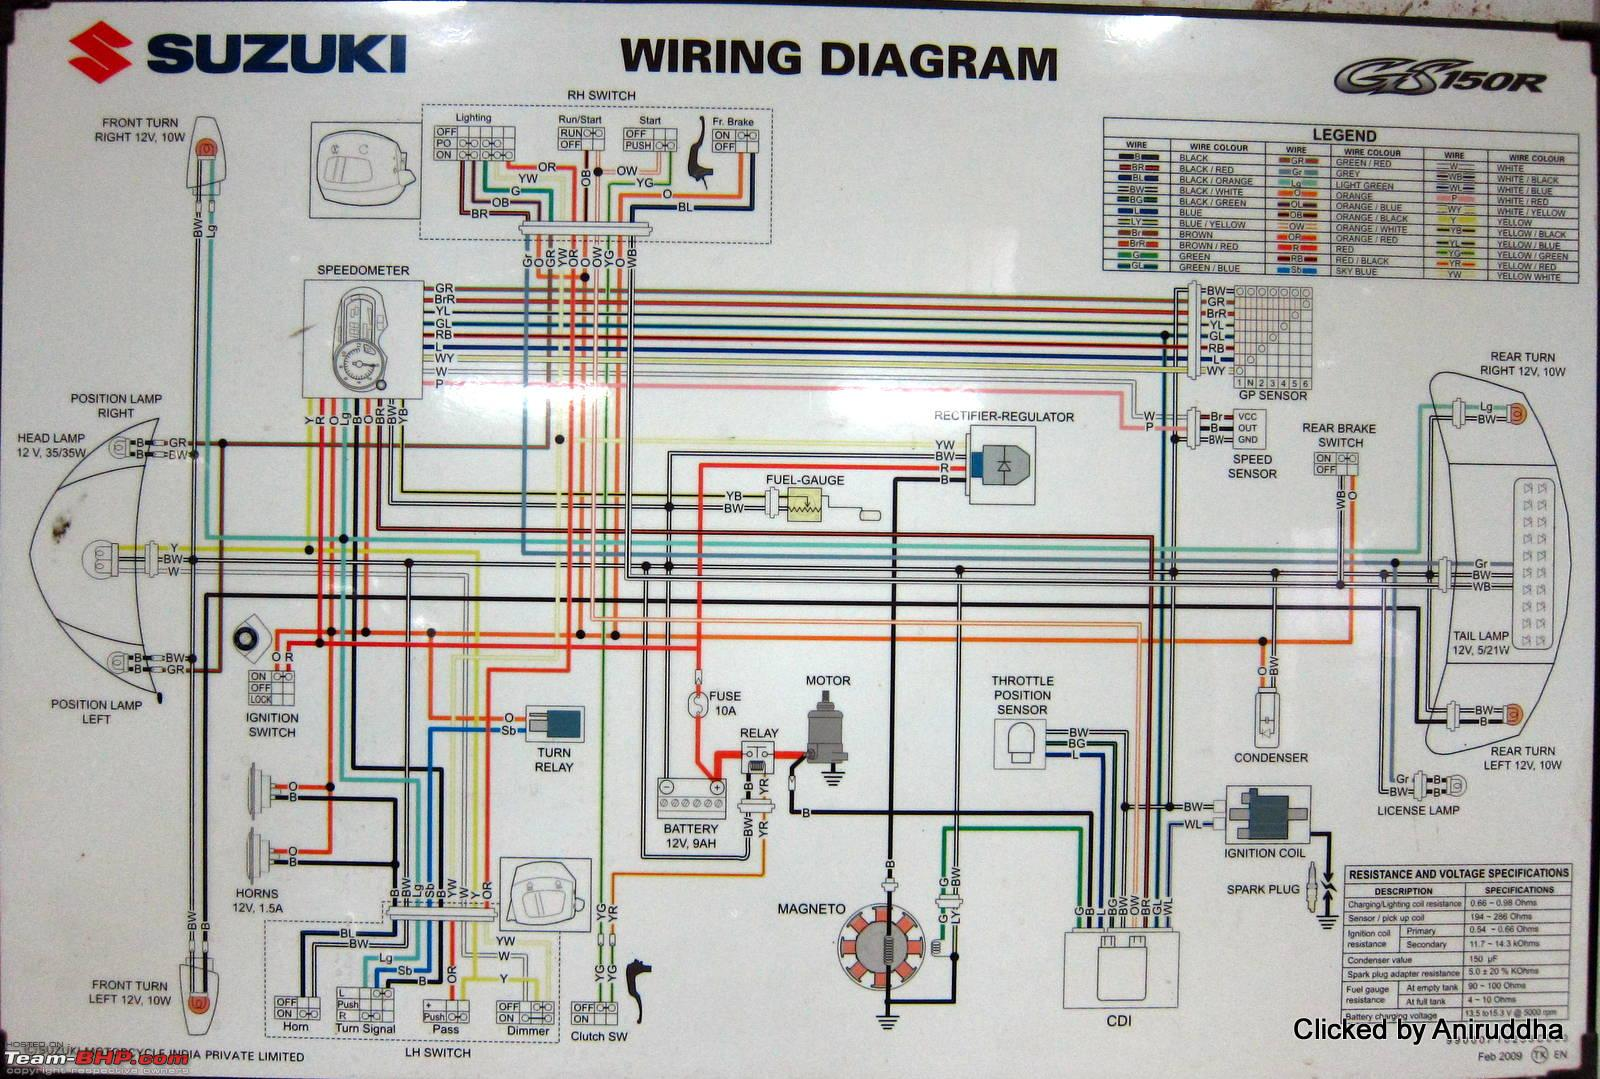 887402d1329132985 circuit diagrams indian motorcycles scooters img_0717 suzuki access wiring diagram suzuki wiring diagrams instruction  at fashall.co